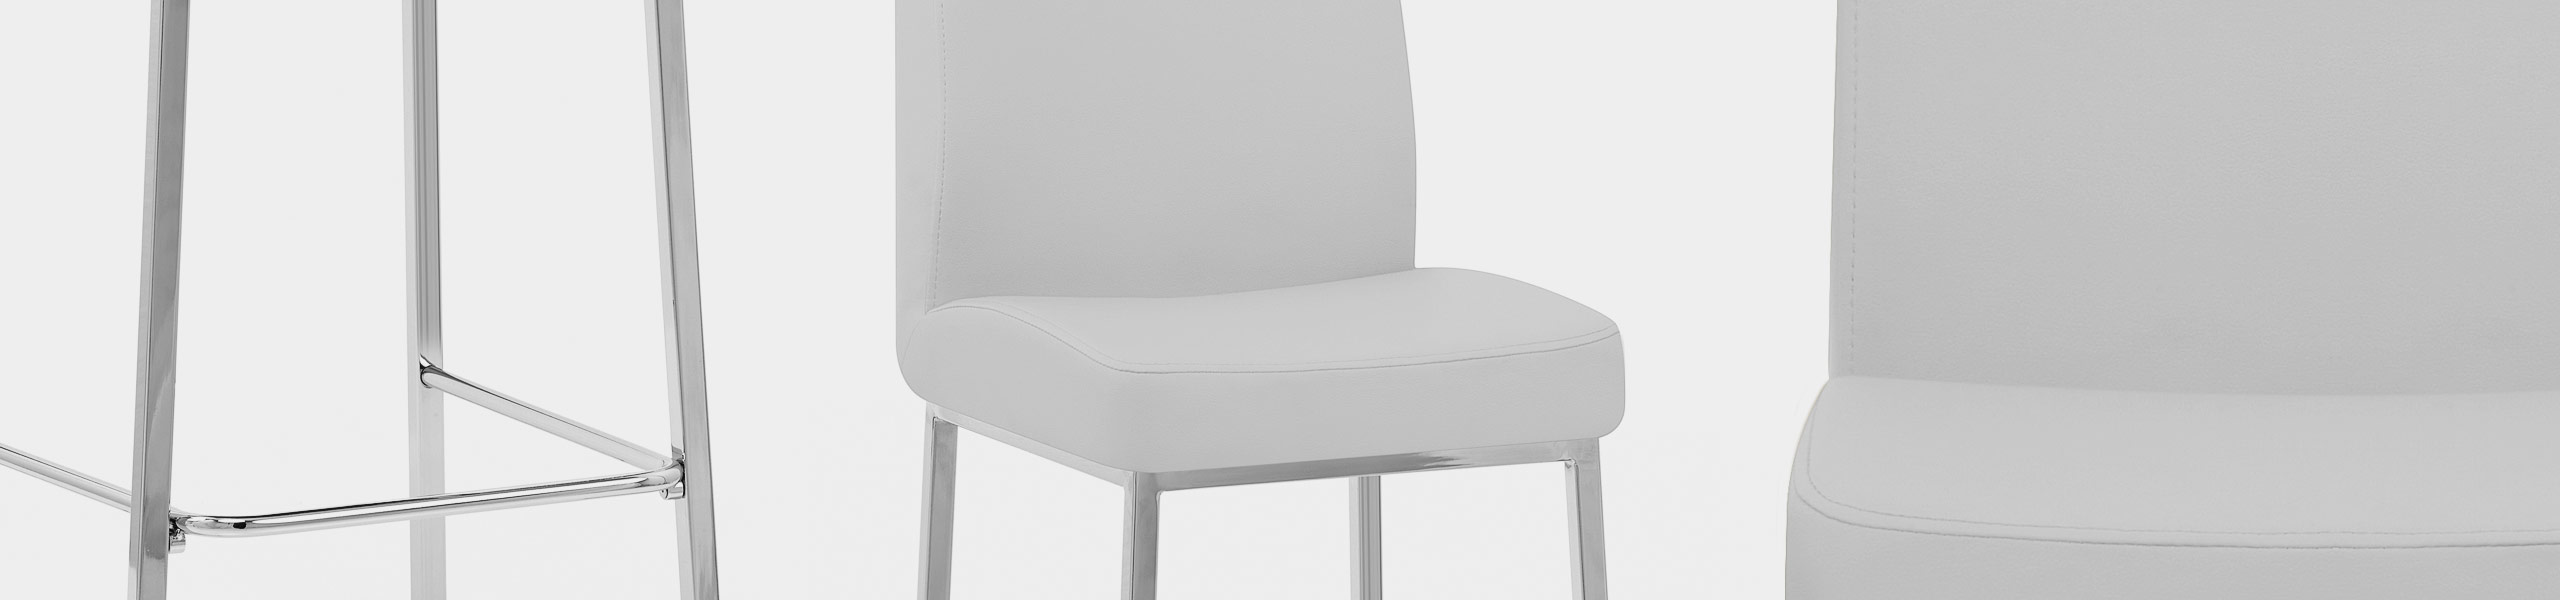 Pacino Stool White Video Banner